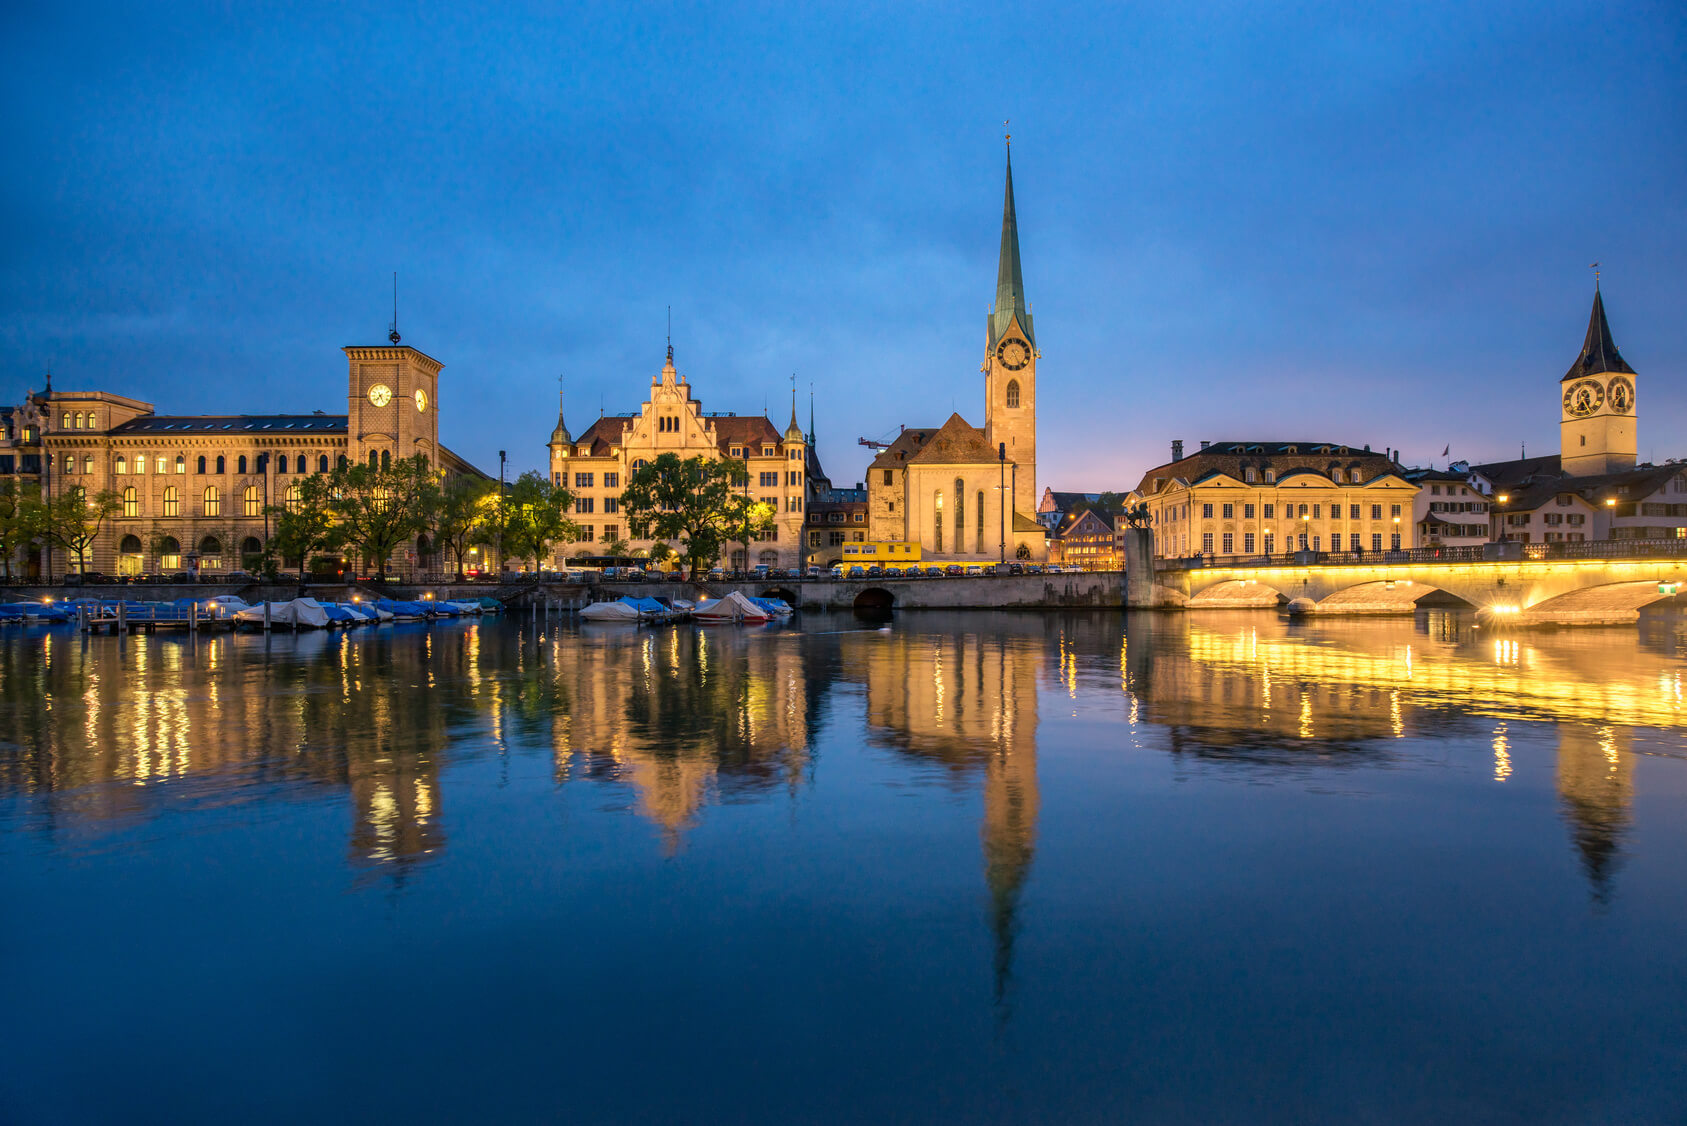 Zurich in the night